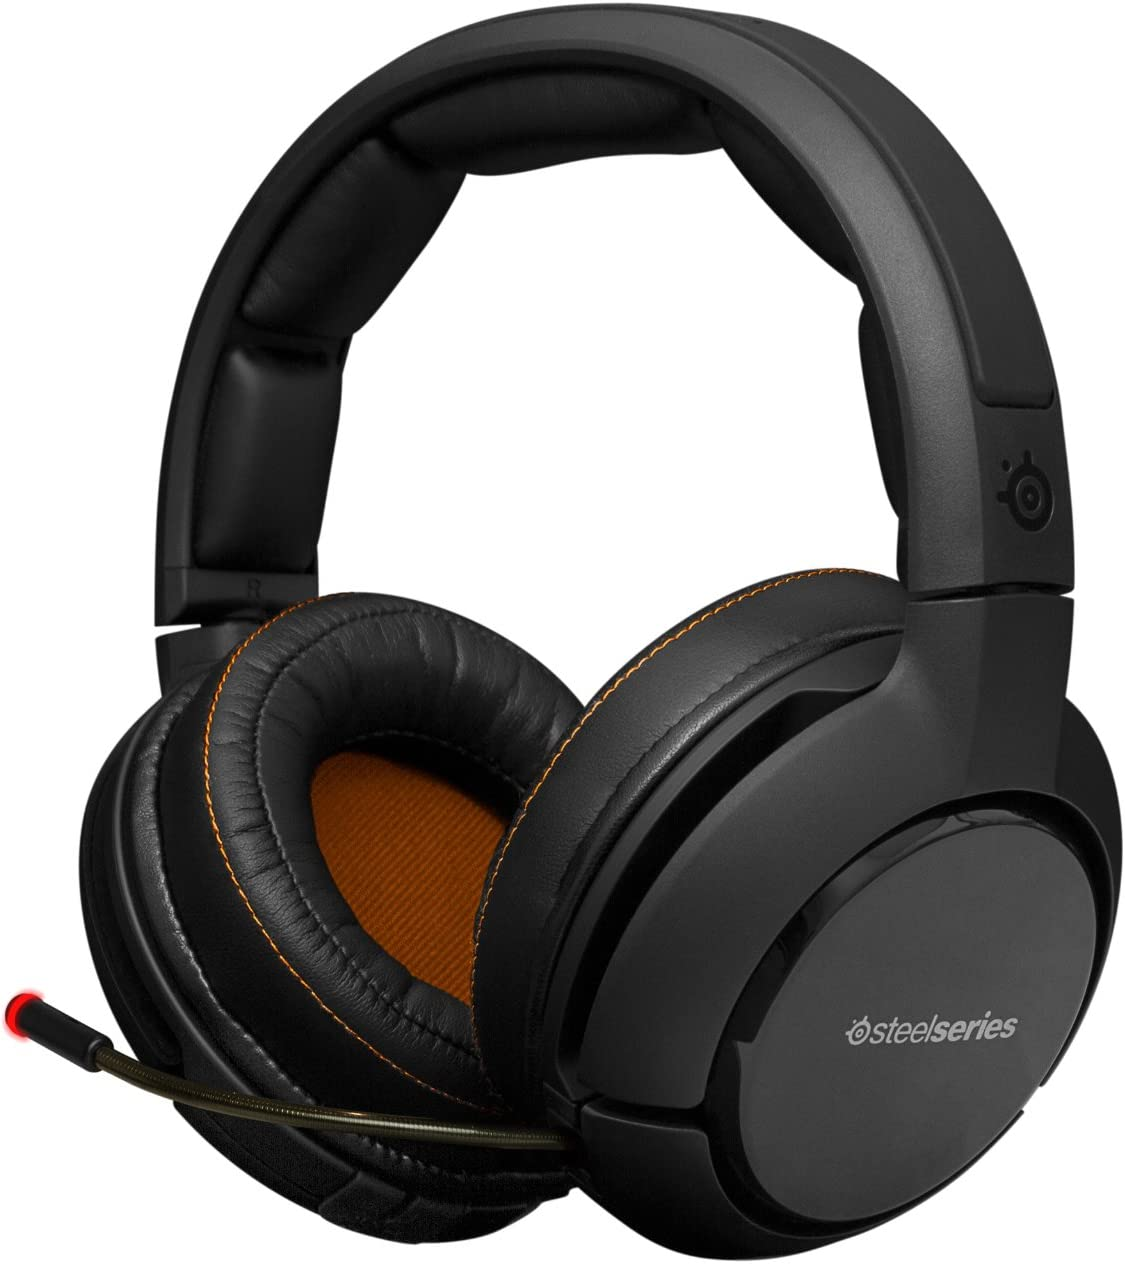 Amazon Com Steelseries H Wireless Gaming Headset With Dolby 7 1 Surround Sound For Pc Mac Ps3 4 Xbox 360 And Apple Tv Computers Accessories